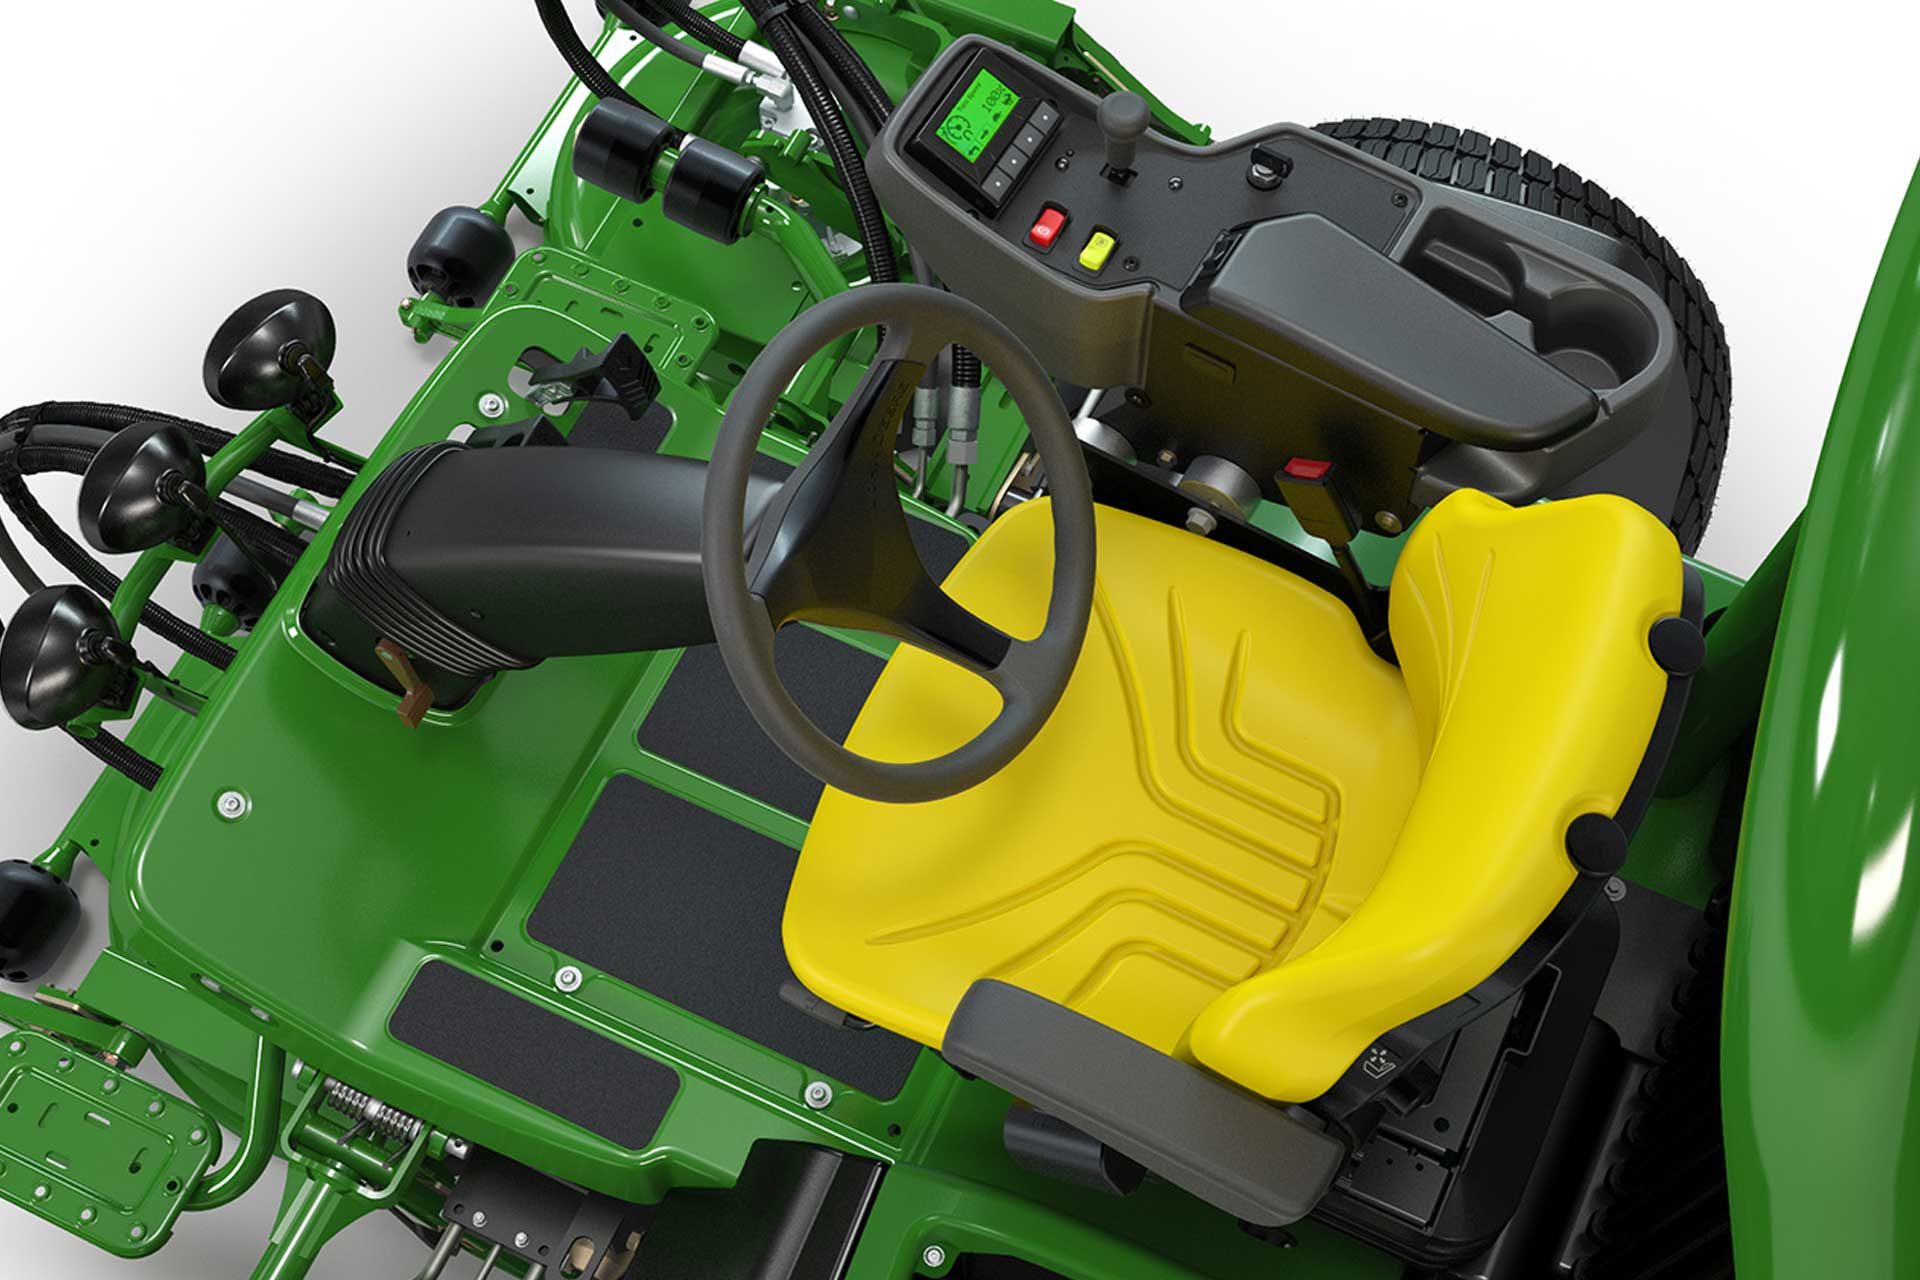 Top-down view of a John Deere riding lawnmower